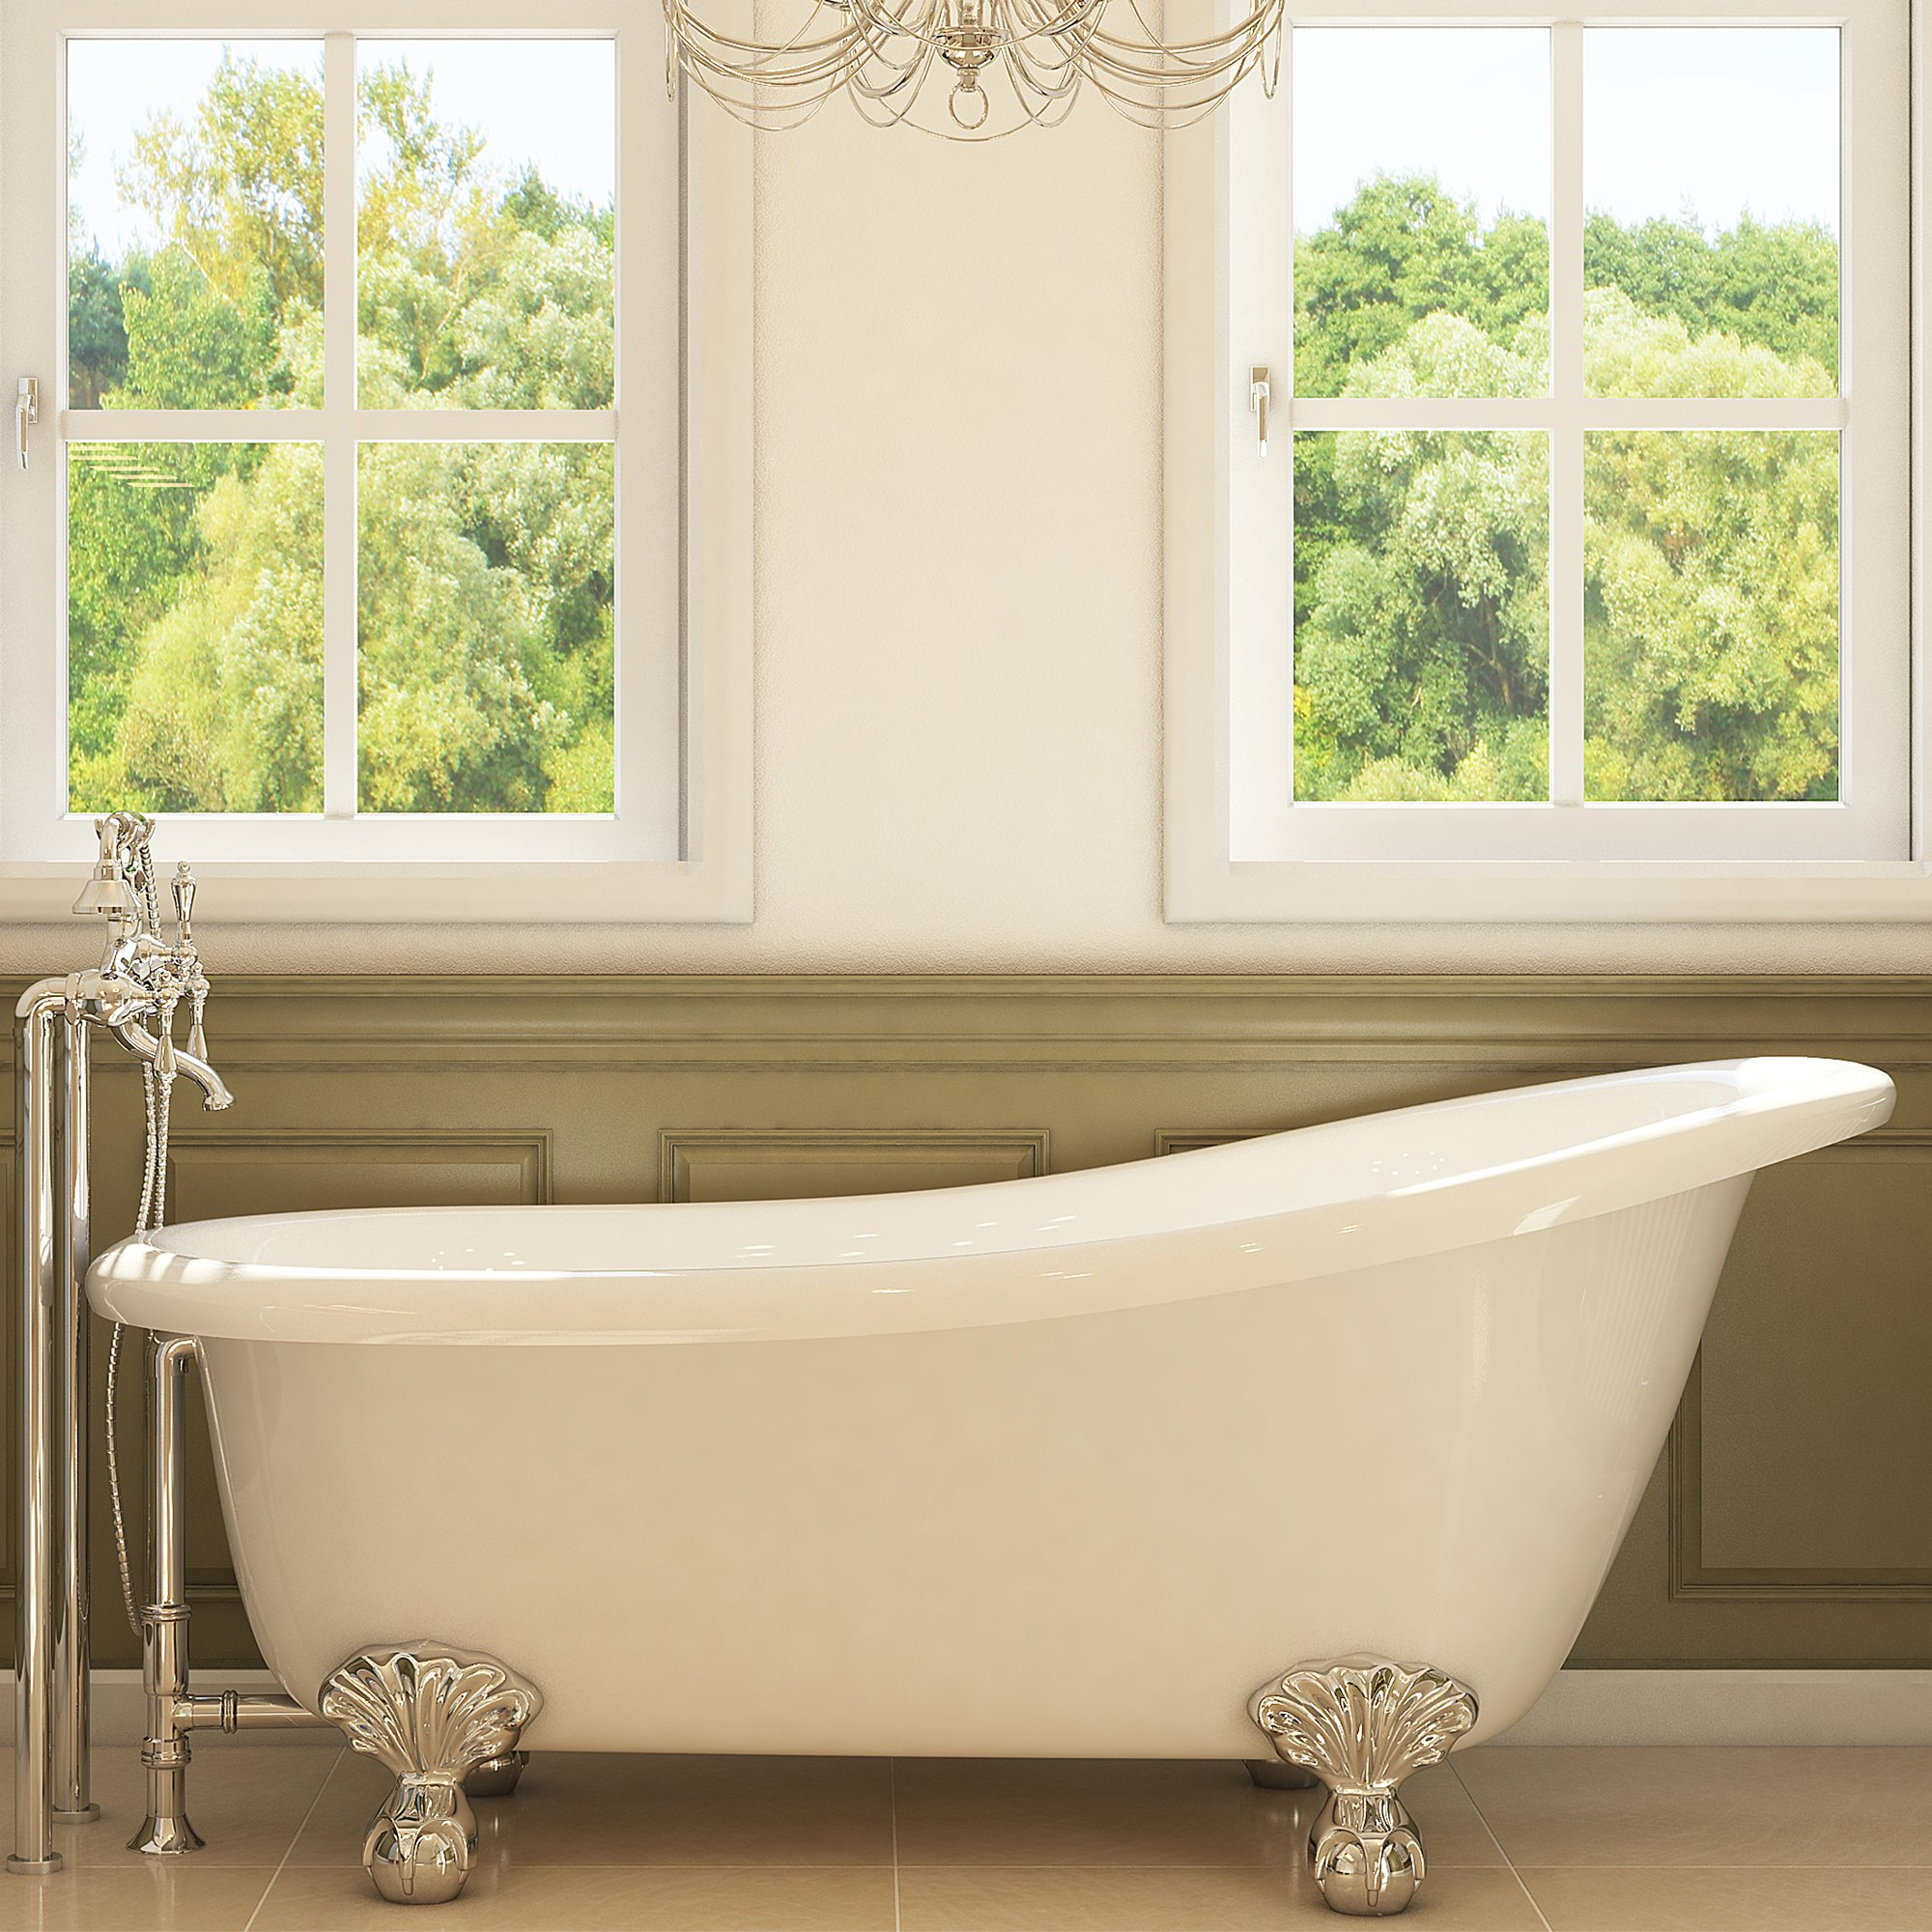 Luxury 67 inch Clawfoot Tub with Vintage Slipper Tub Design in White, includes Polished Chrome Ball and Claw Feet and Drain, from The Glendale Collection by Pelham & White